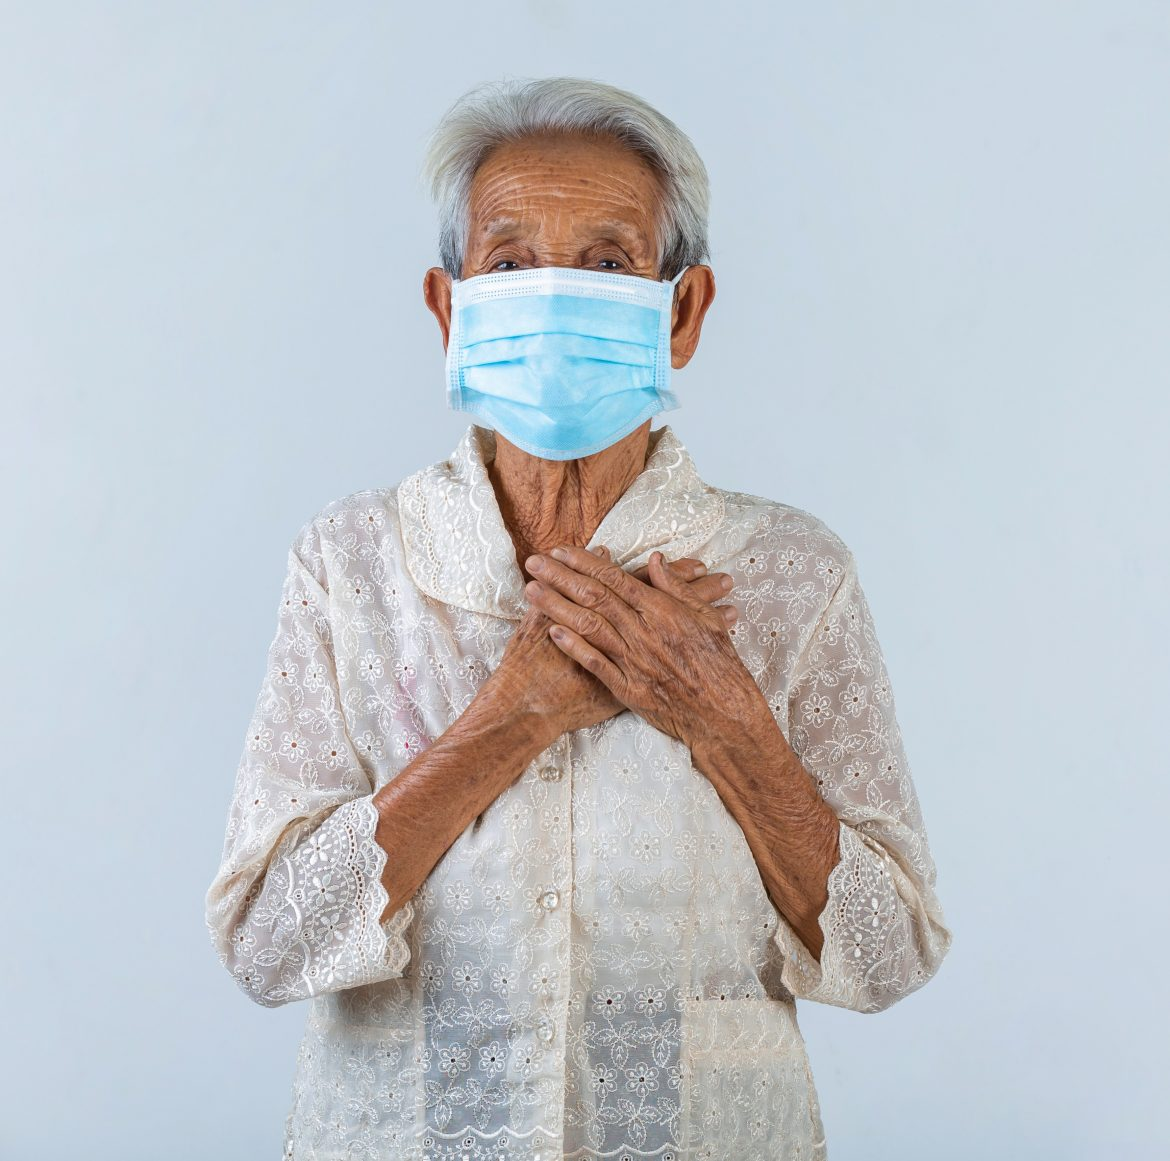 grandmother-is-puting-her-hands-in-the-lock-and-hoped-for-the-best-cencept-mask-campaign-2.jpg